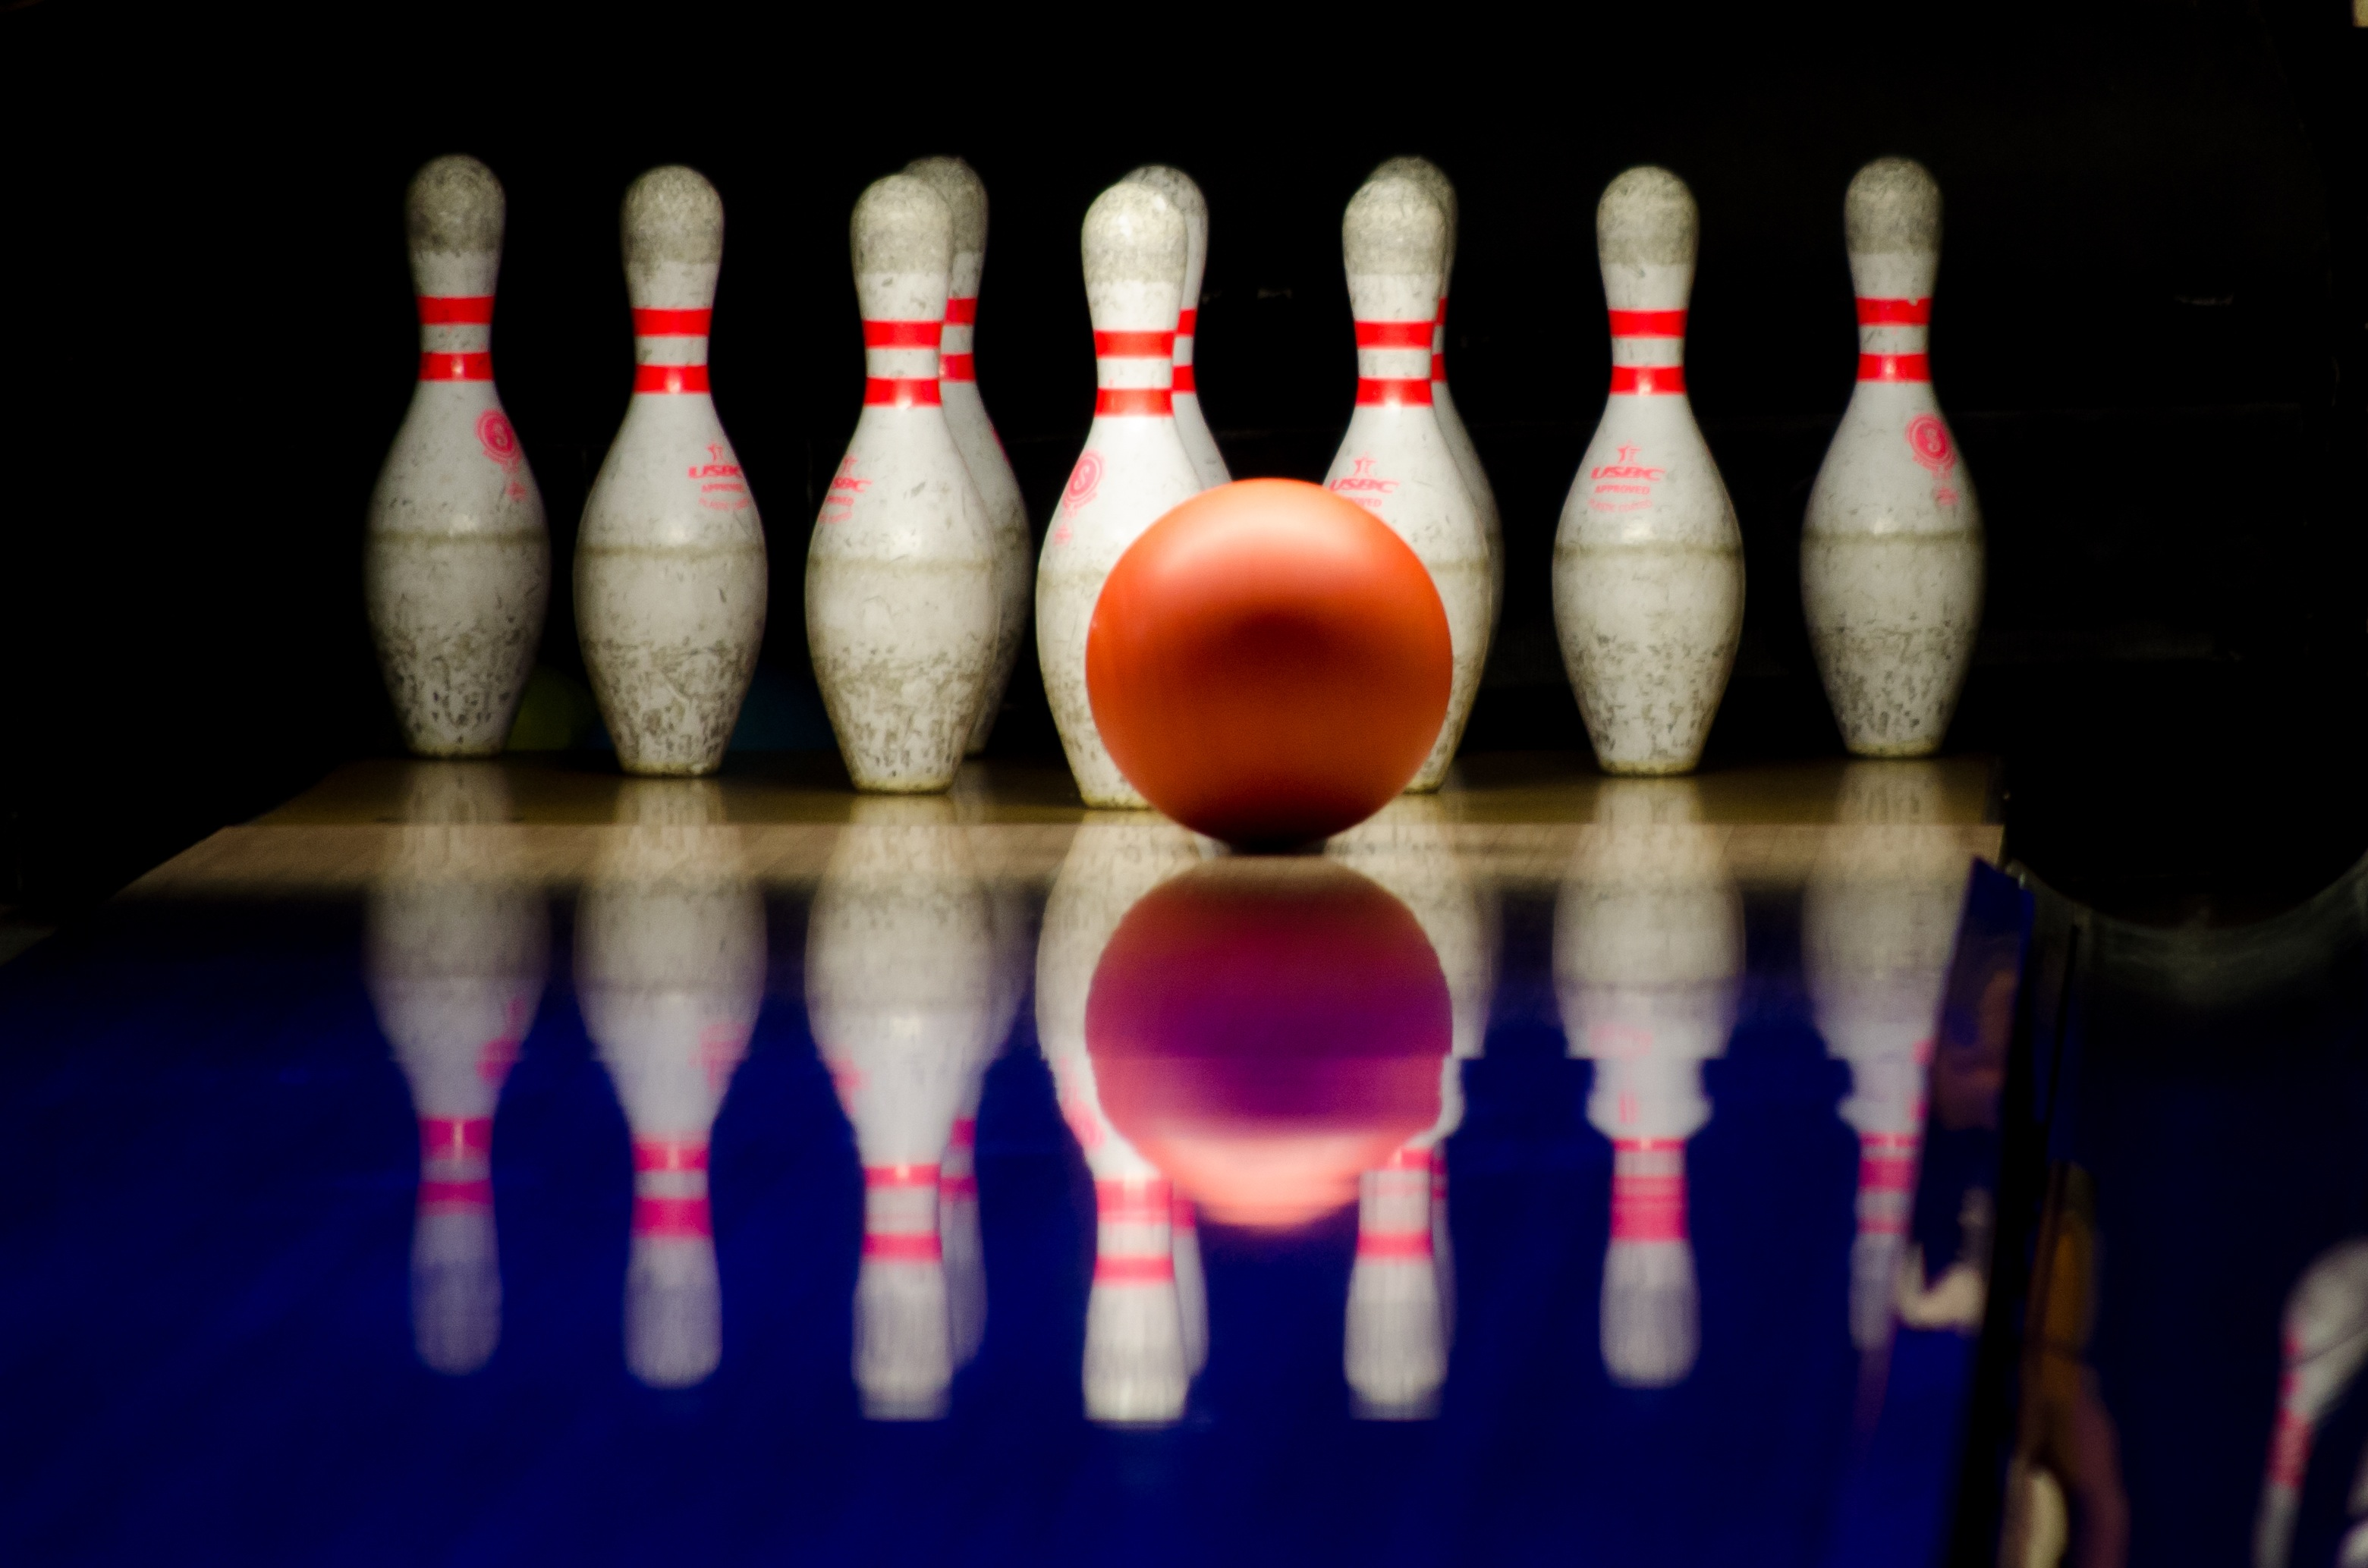 Bowling Alley, Sport, Object, Bowling, Bowl, HQ Photo